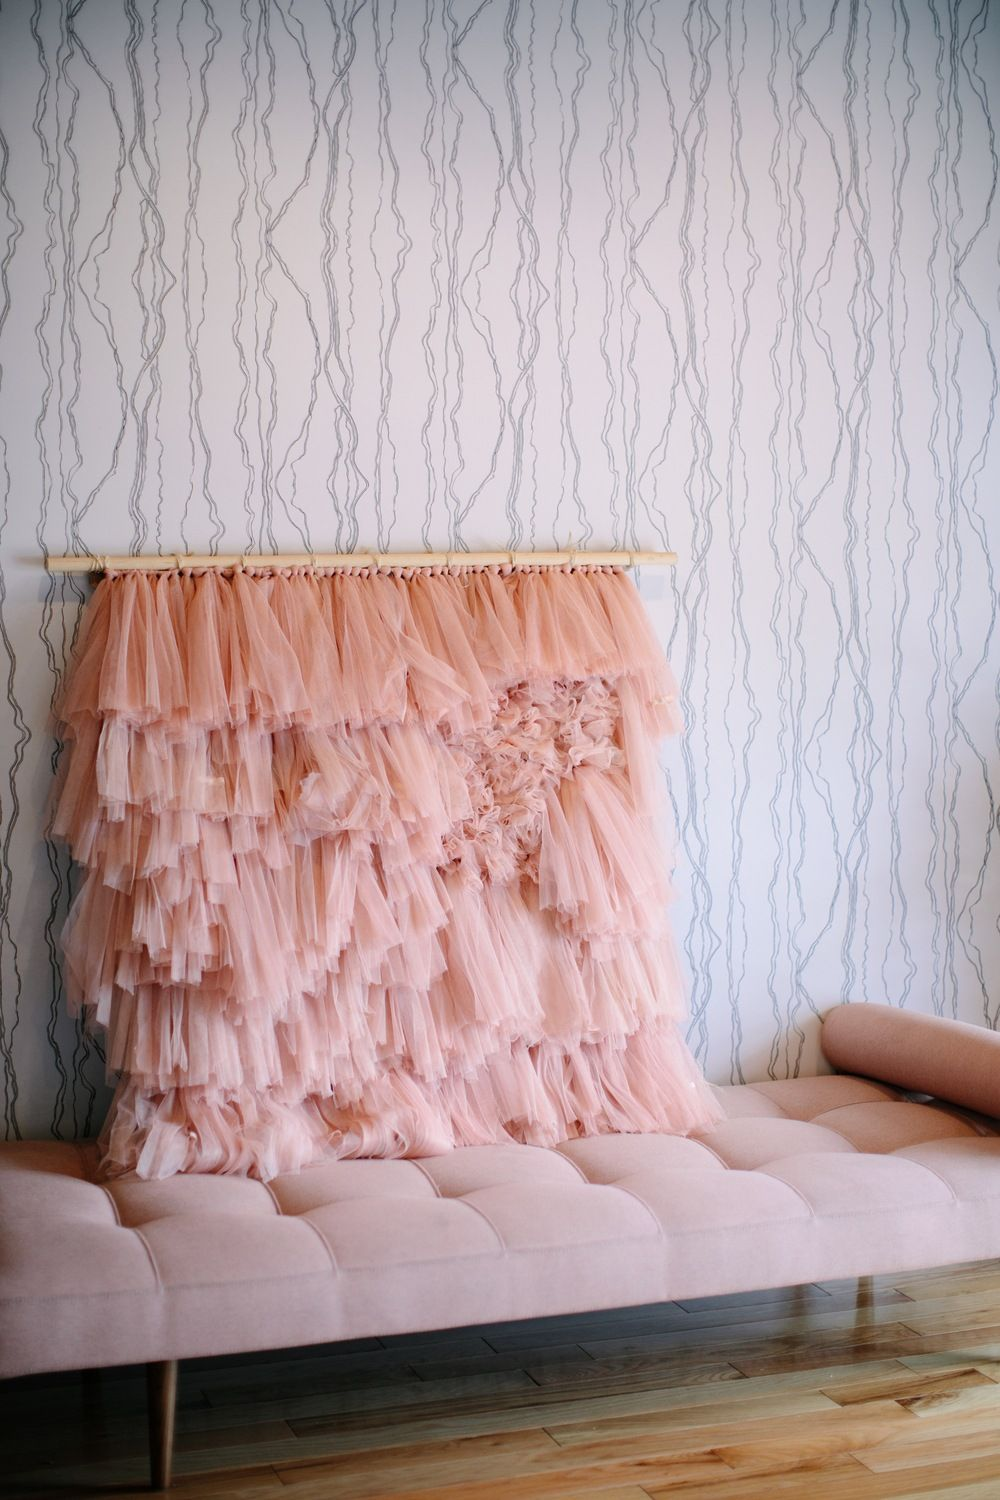 DIY Tulle Wall Hanging #weaving